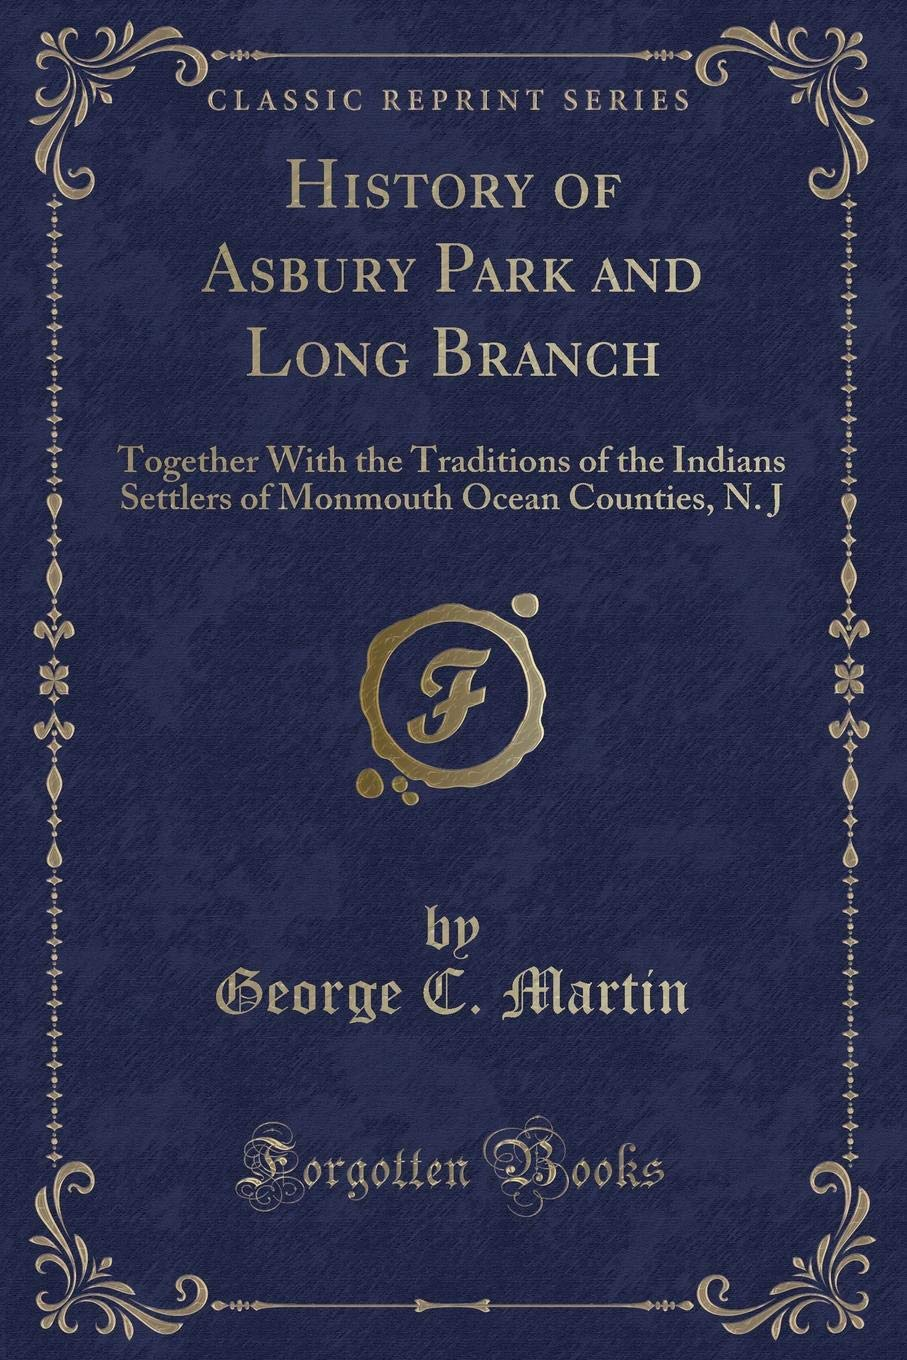 Download History of Asbury Park and Long Branch: Together With the Traditions of the Indians Settlers of Monmouth Ocean Counties, N. J (Classic Reprint) ebook